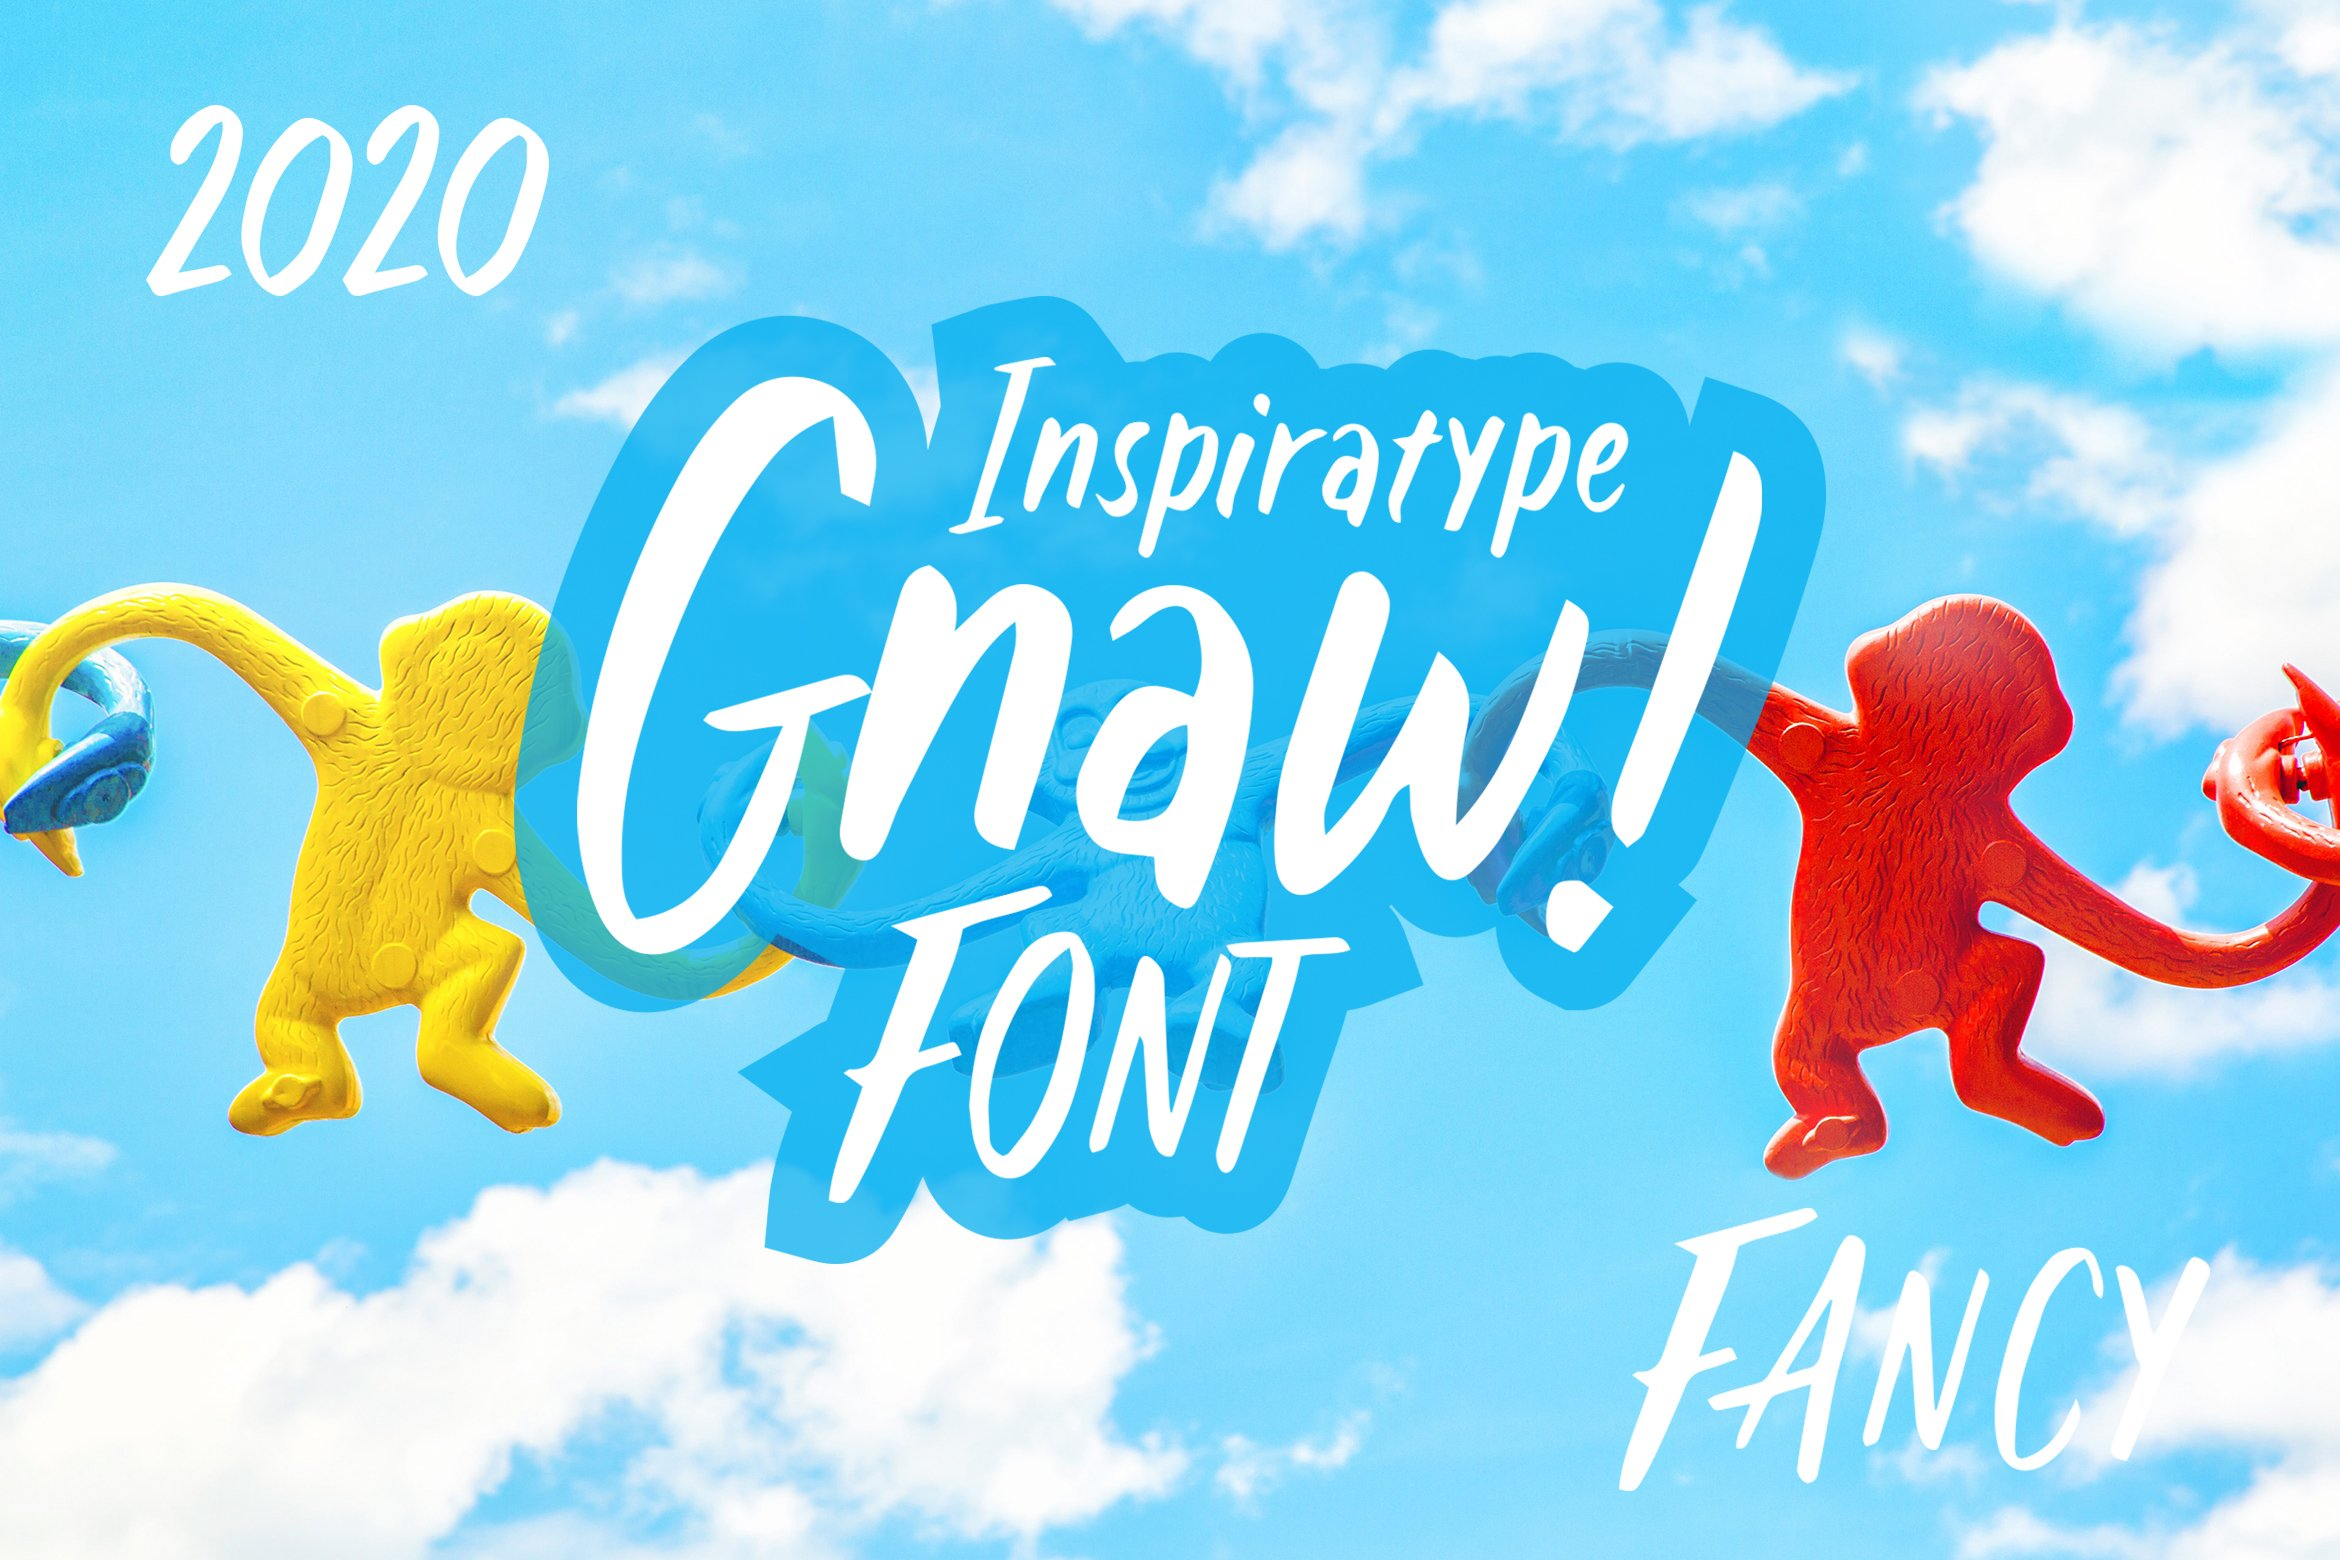 Gnaw - Kid's Fancy Font example image 1